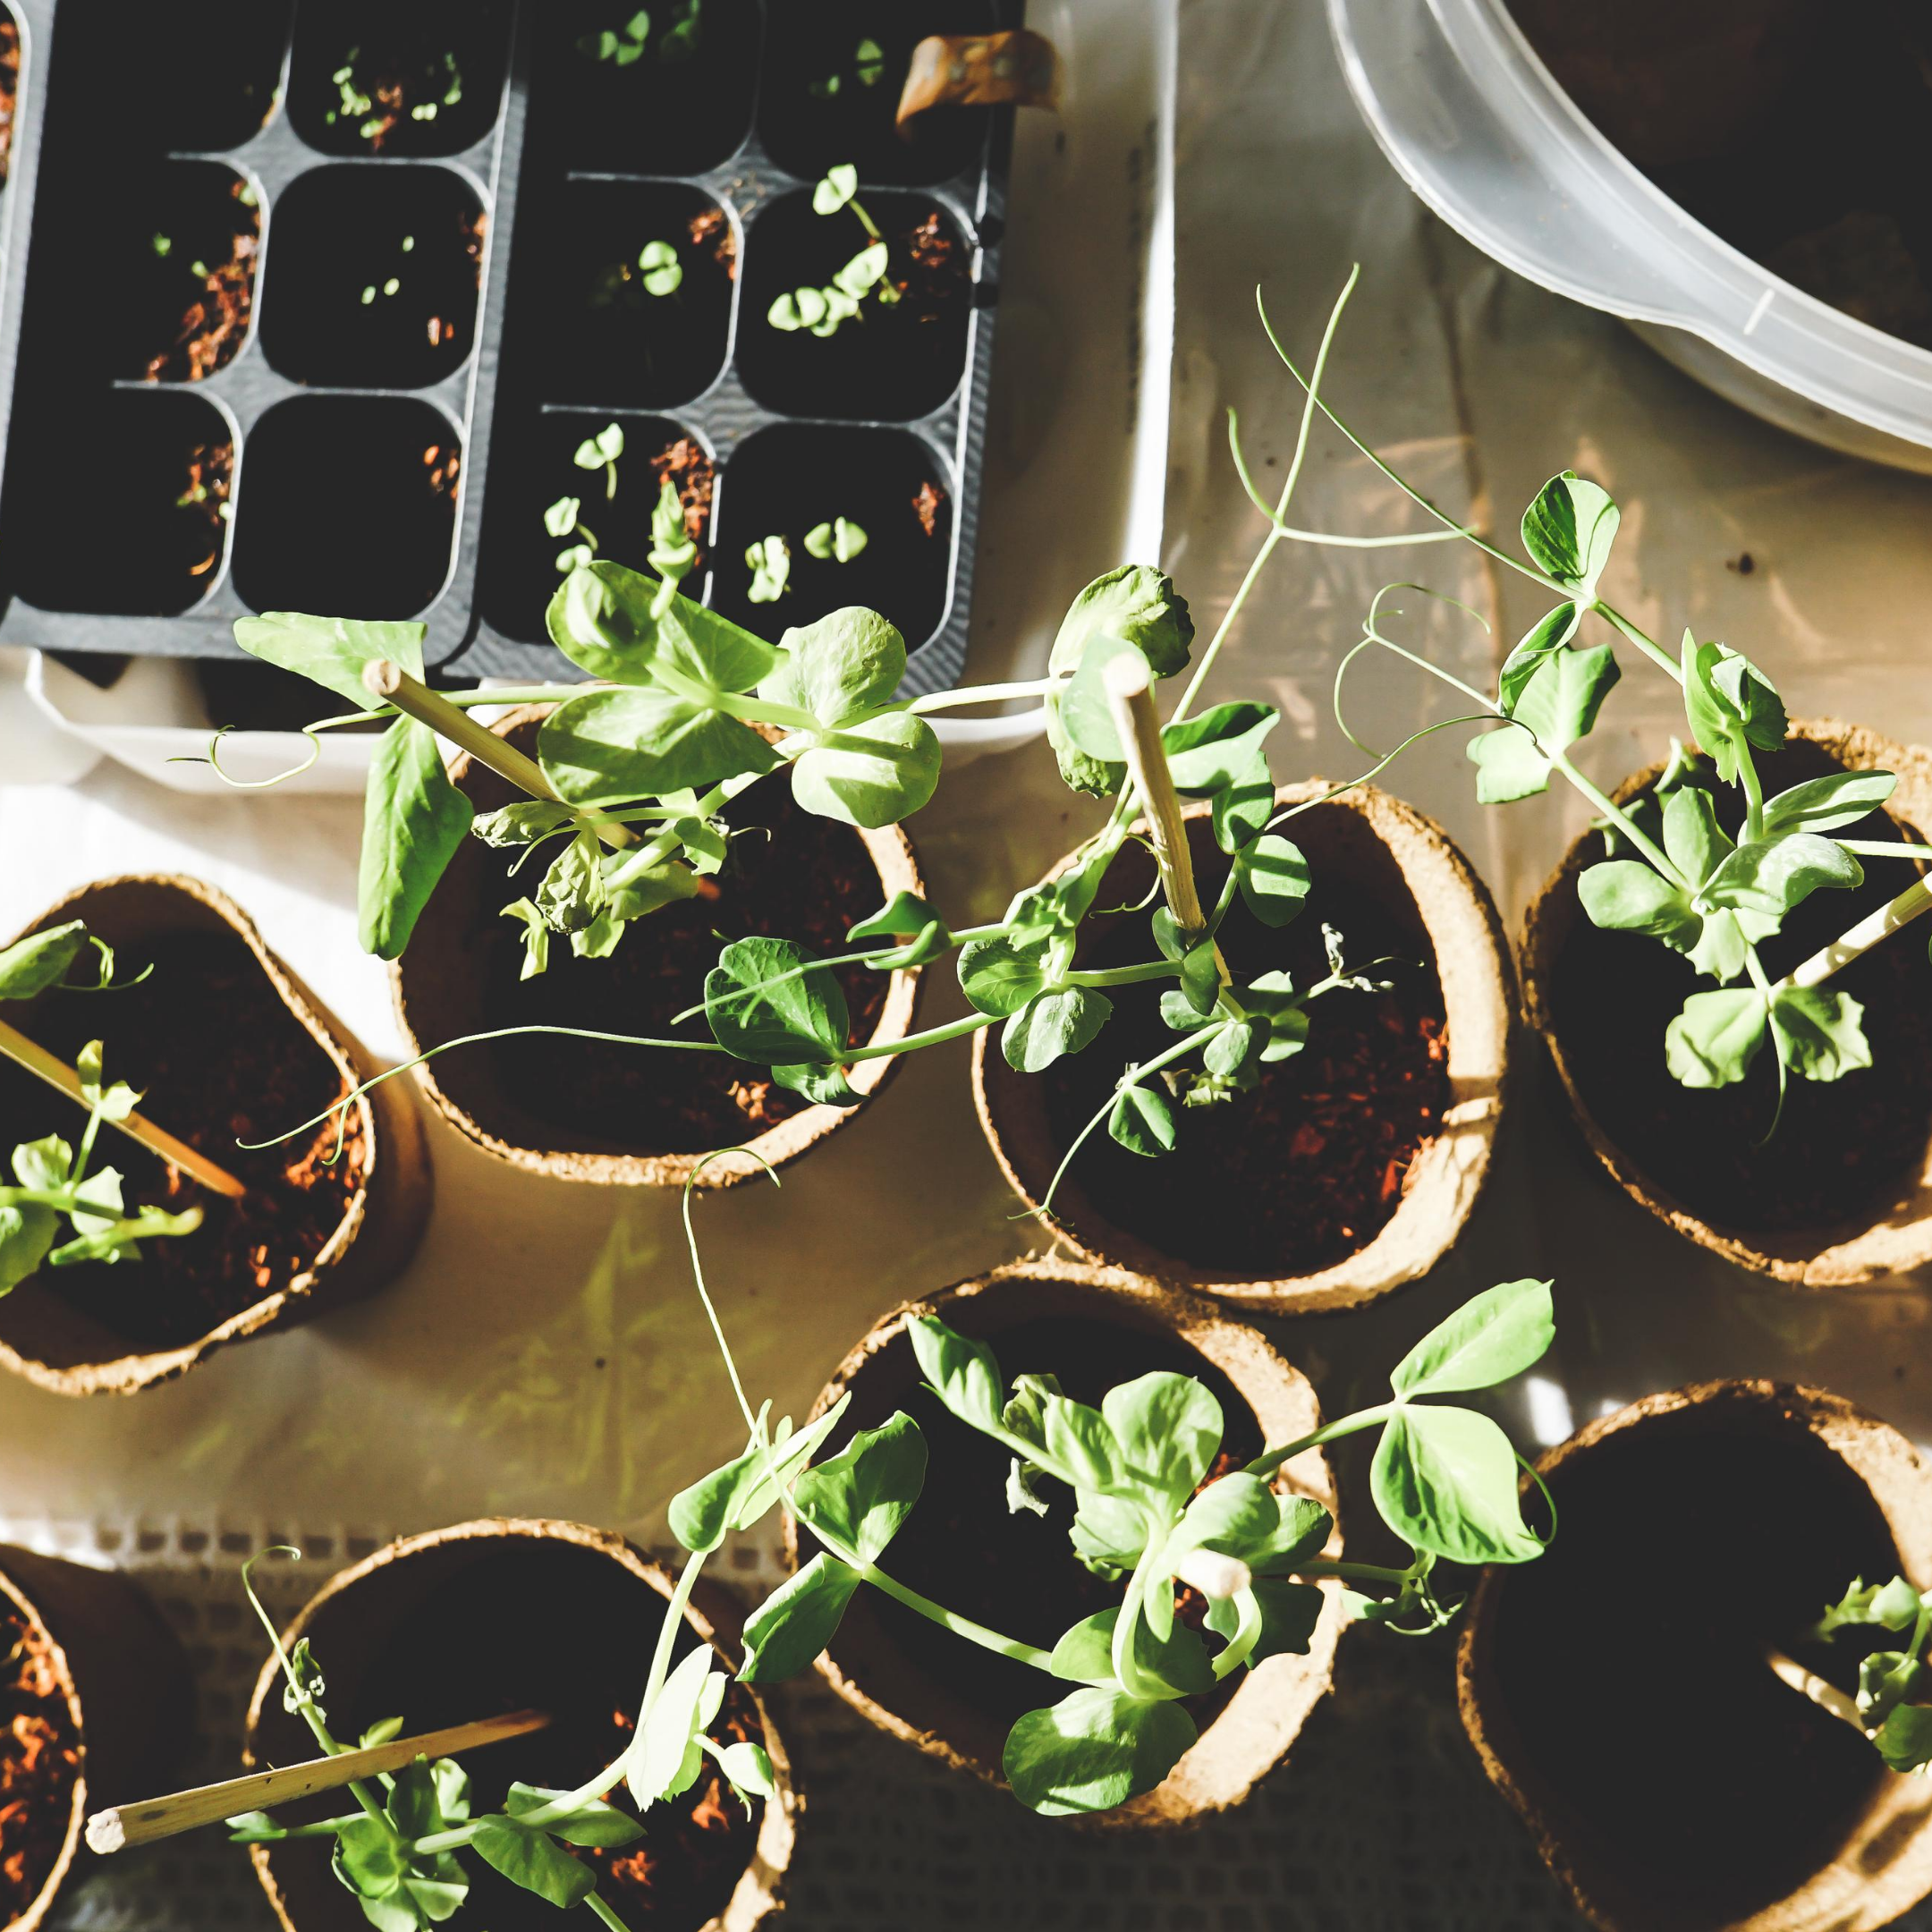 An Urban Agriculture Revival